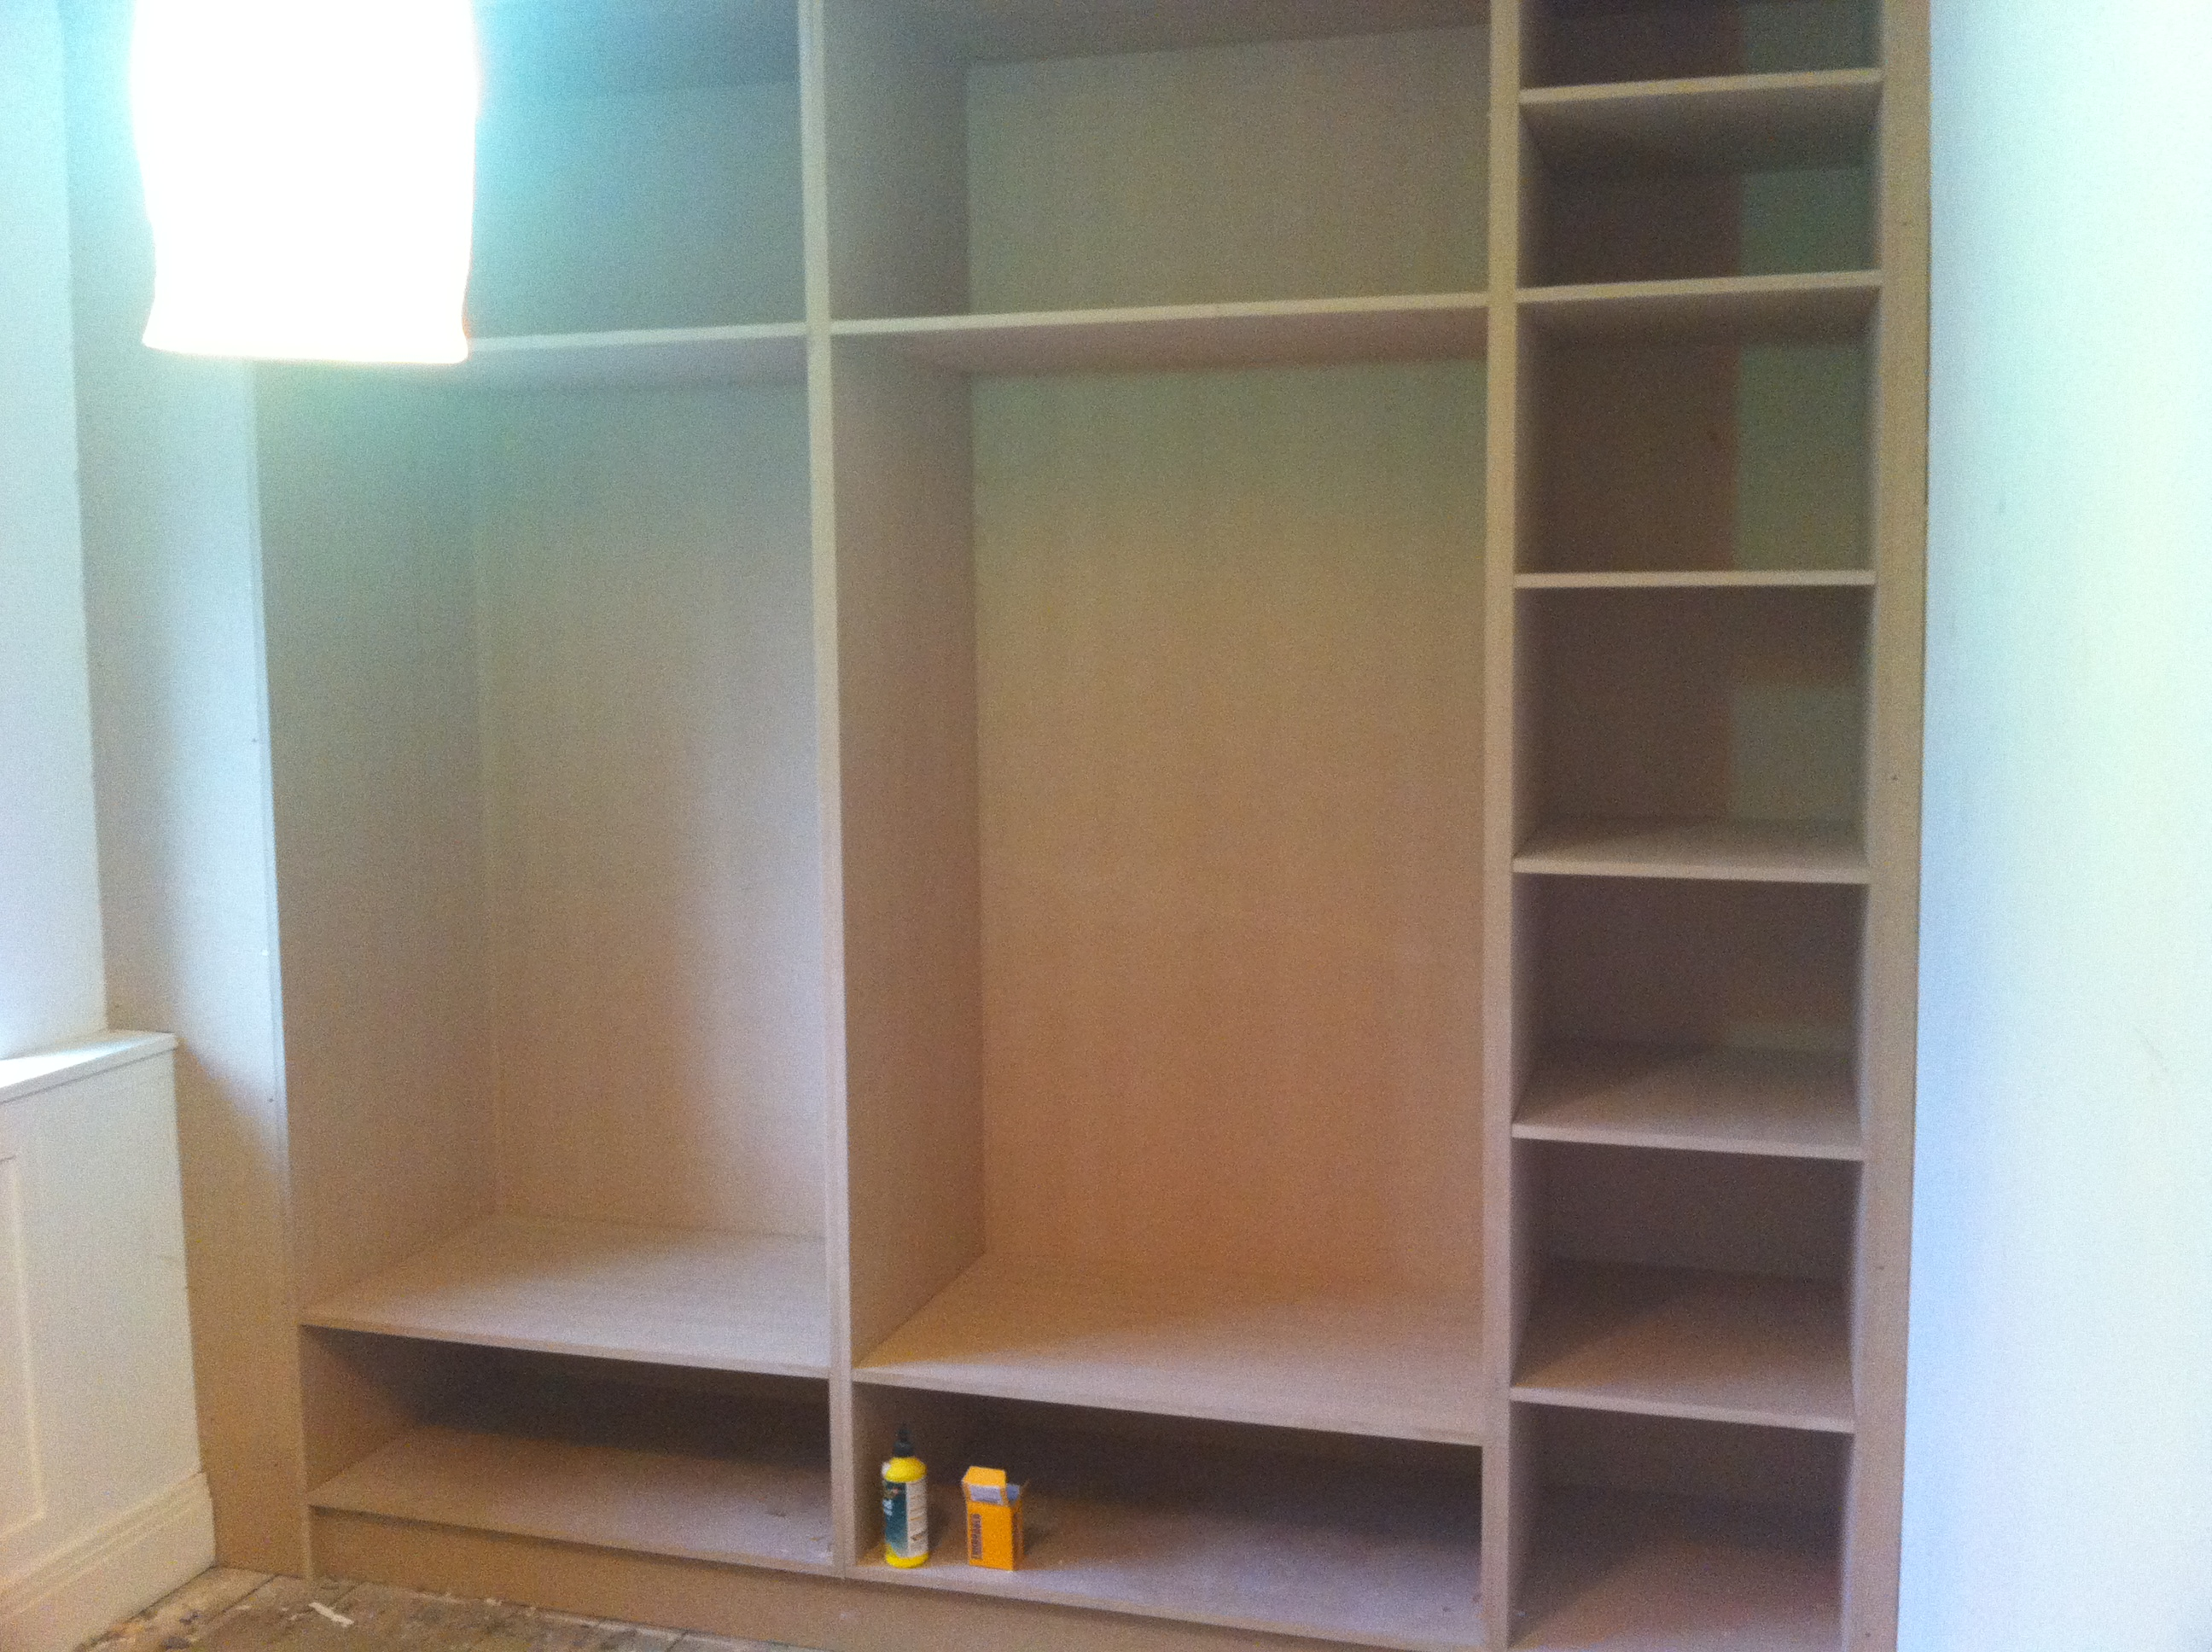 Haverstock Hill NW3 Bespoke Shelving